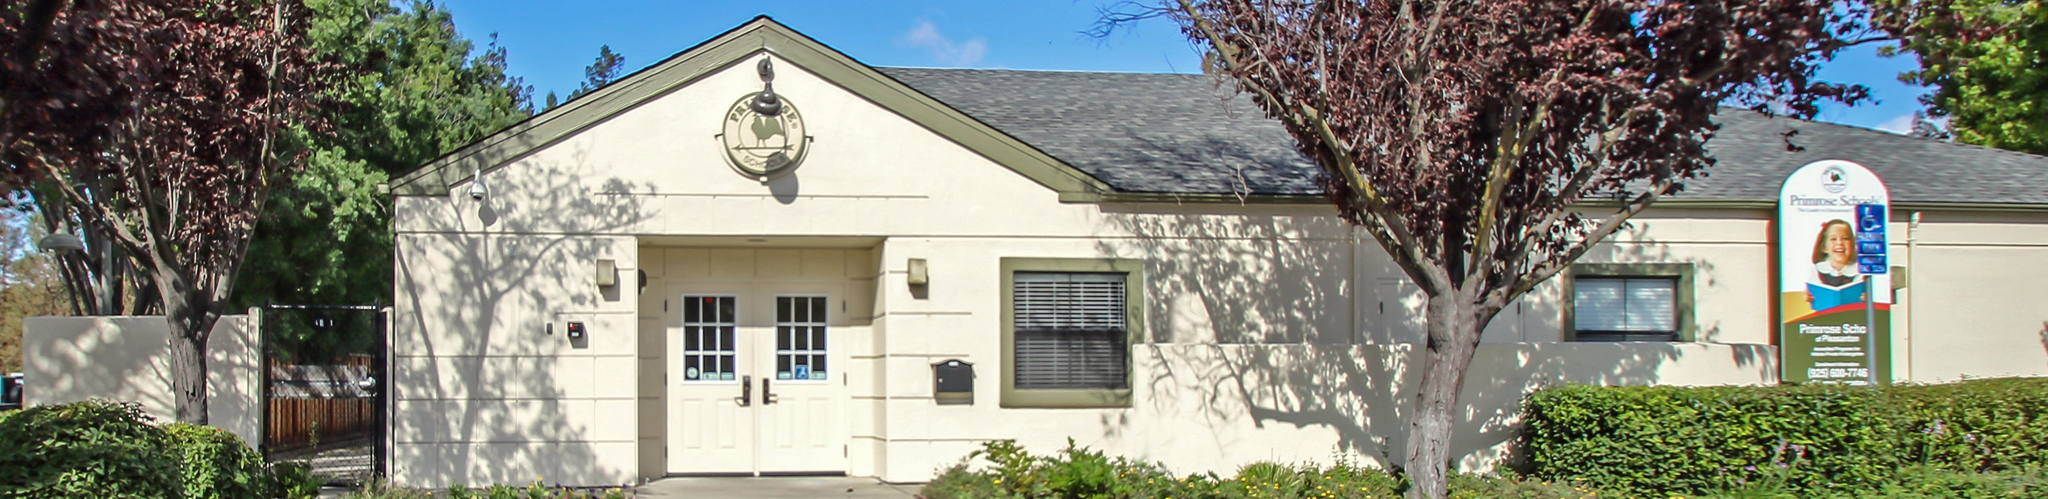 Exterior of a Primrose School of Pleasanton